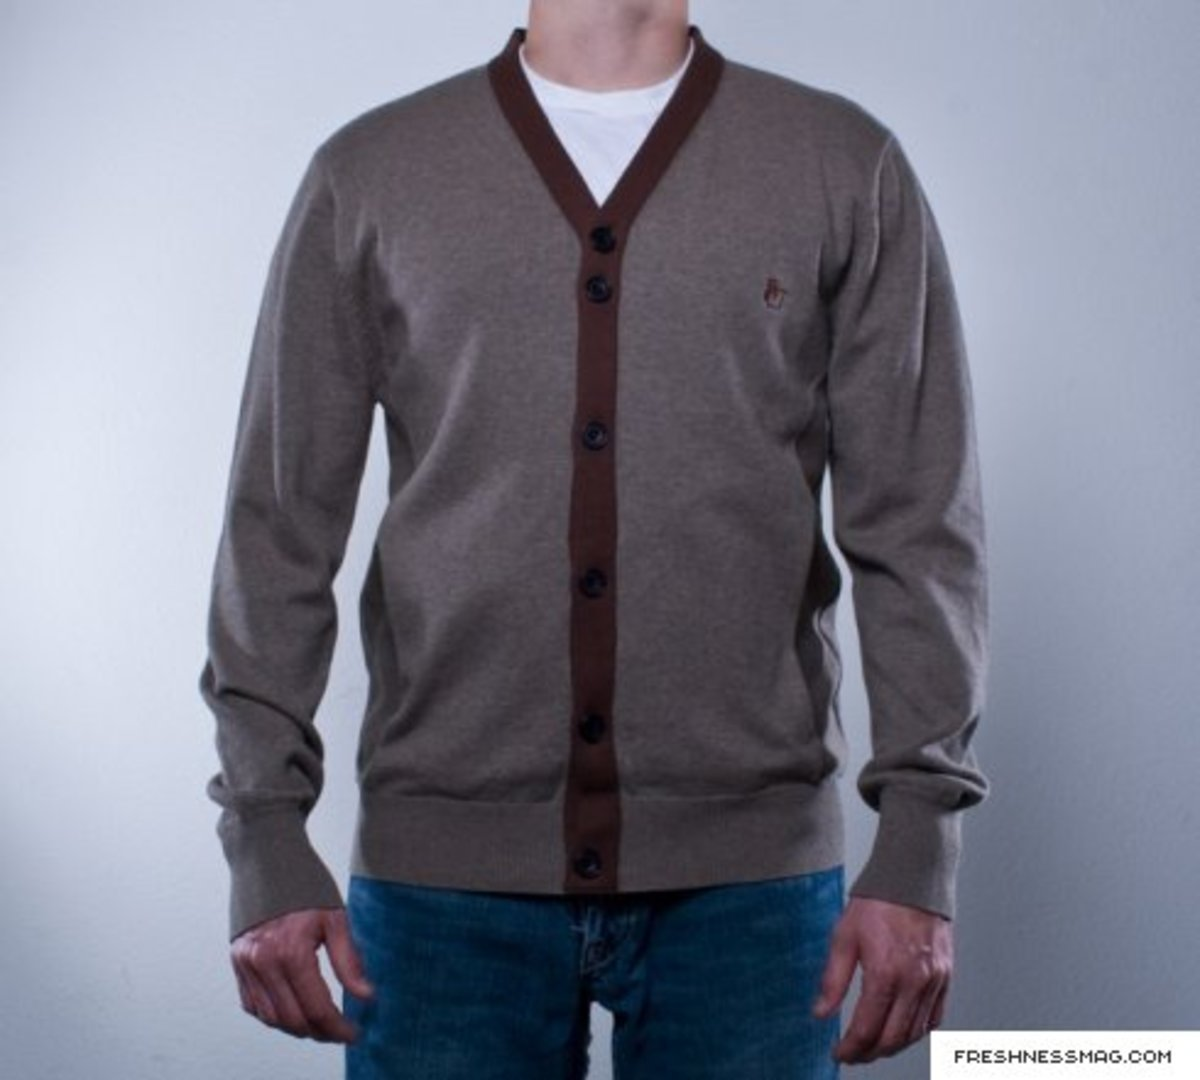 Alphanumeric (A#) - Cut & Sew Collection - Fall 2008